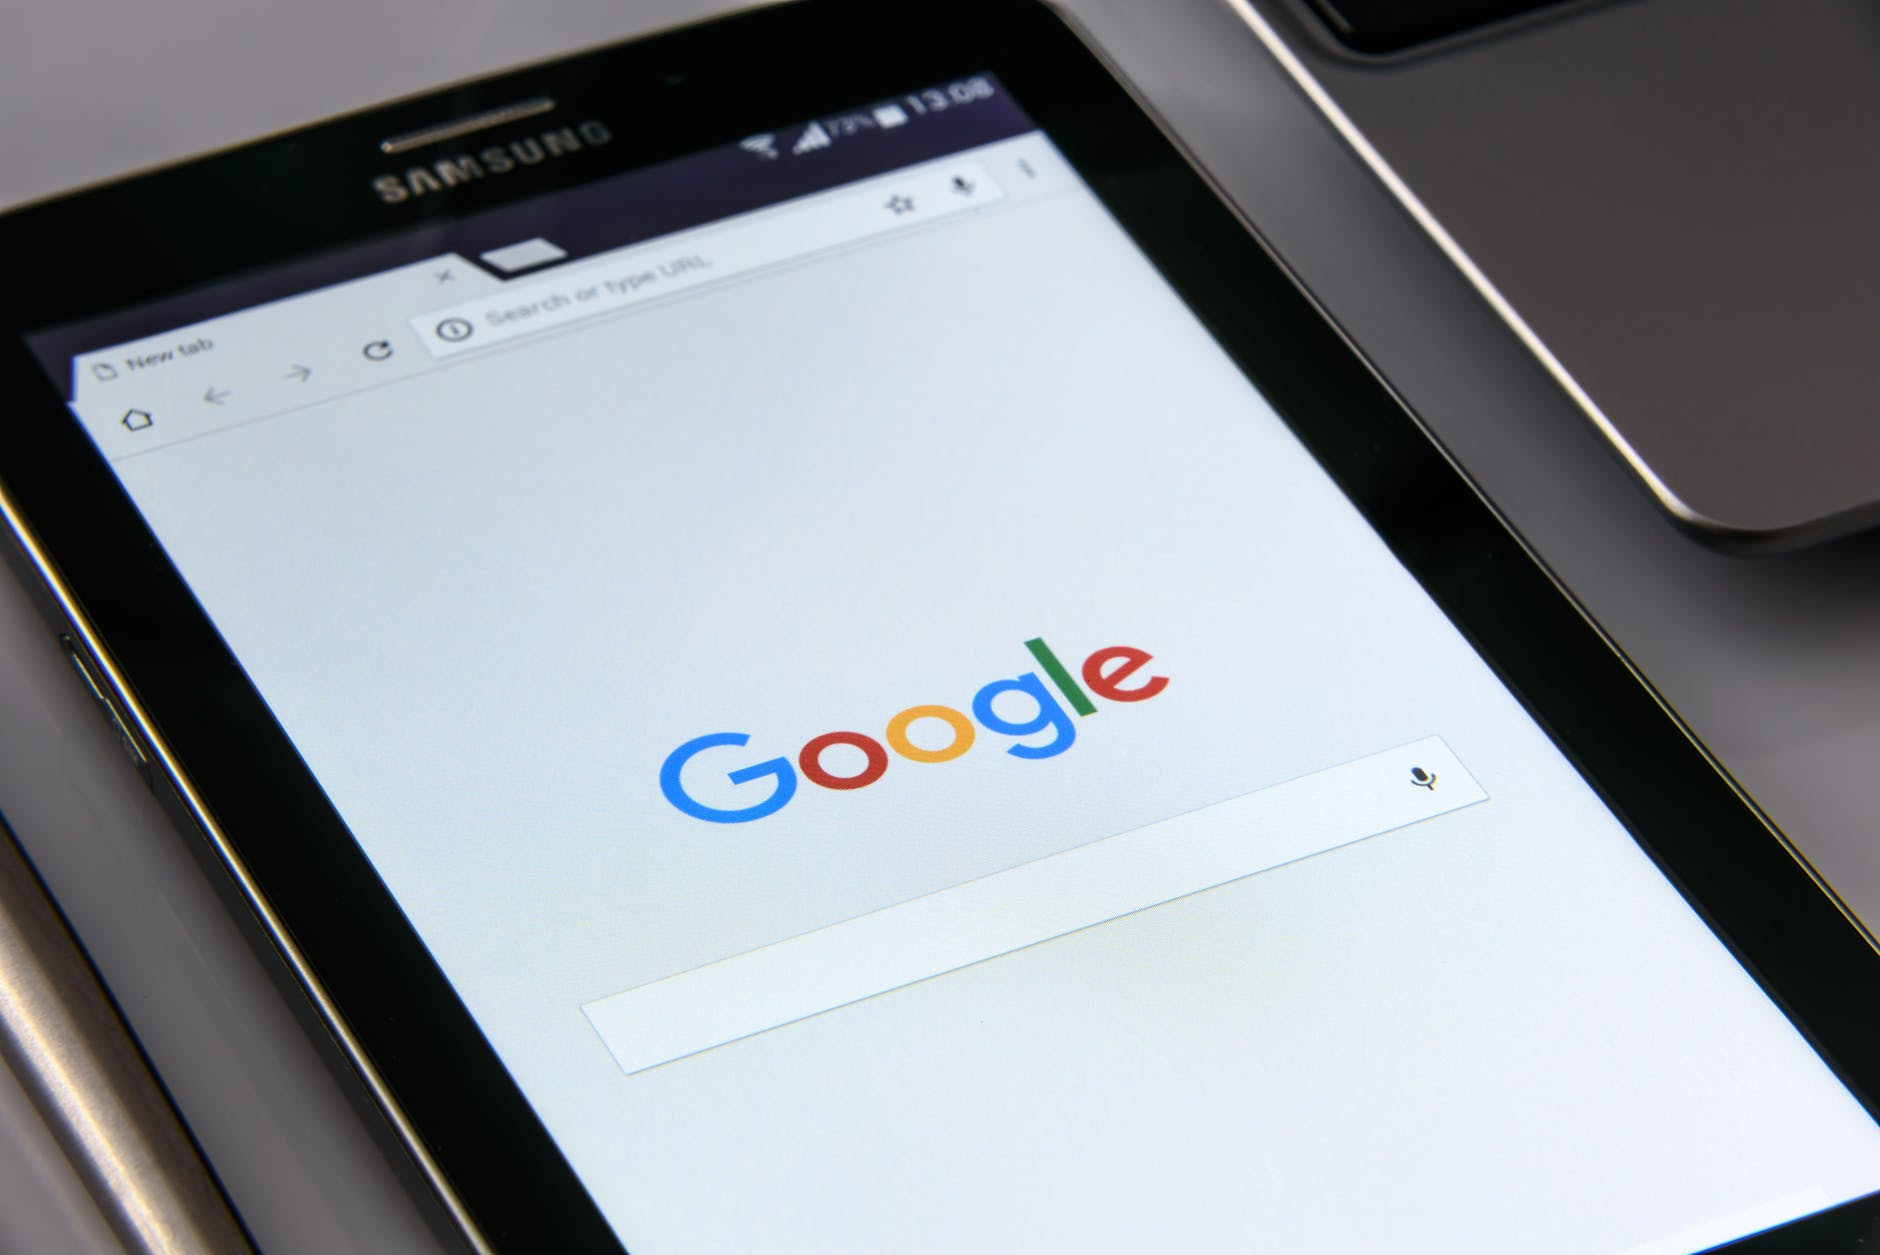 What can we learn from the evolution of Google?